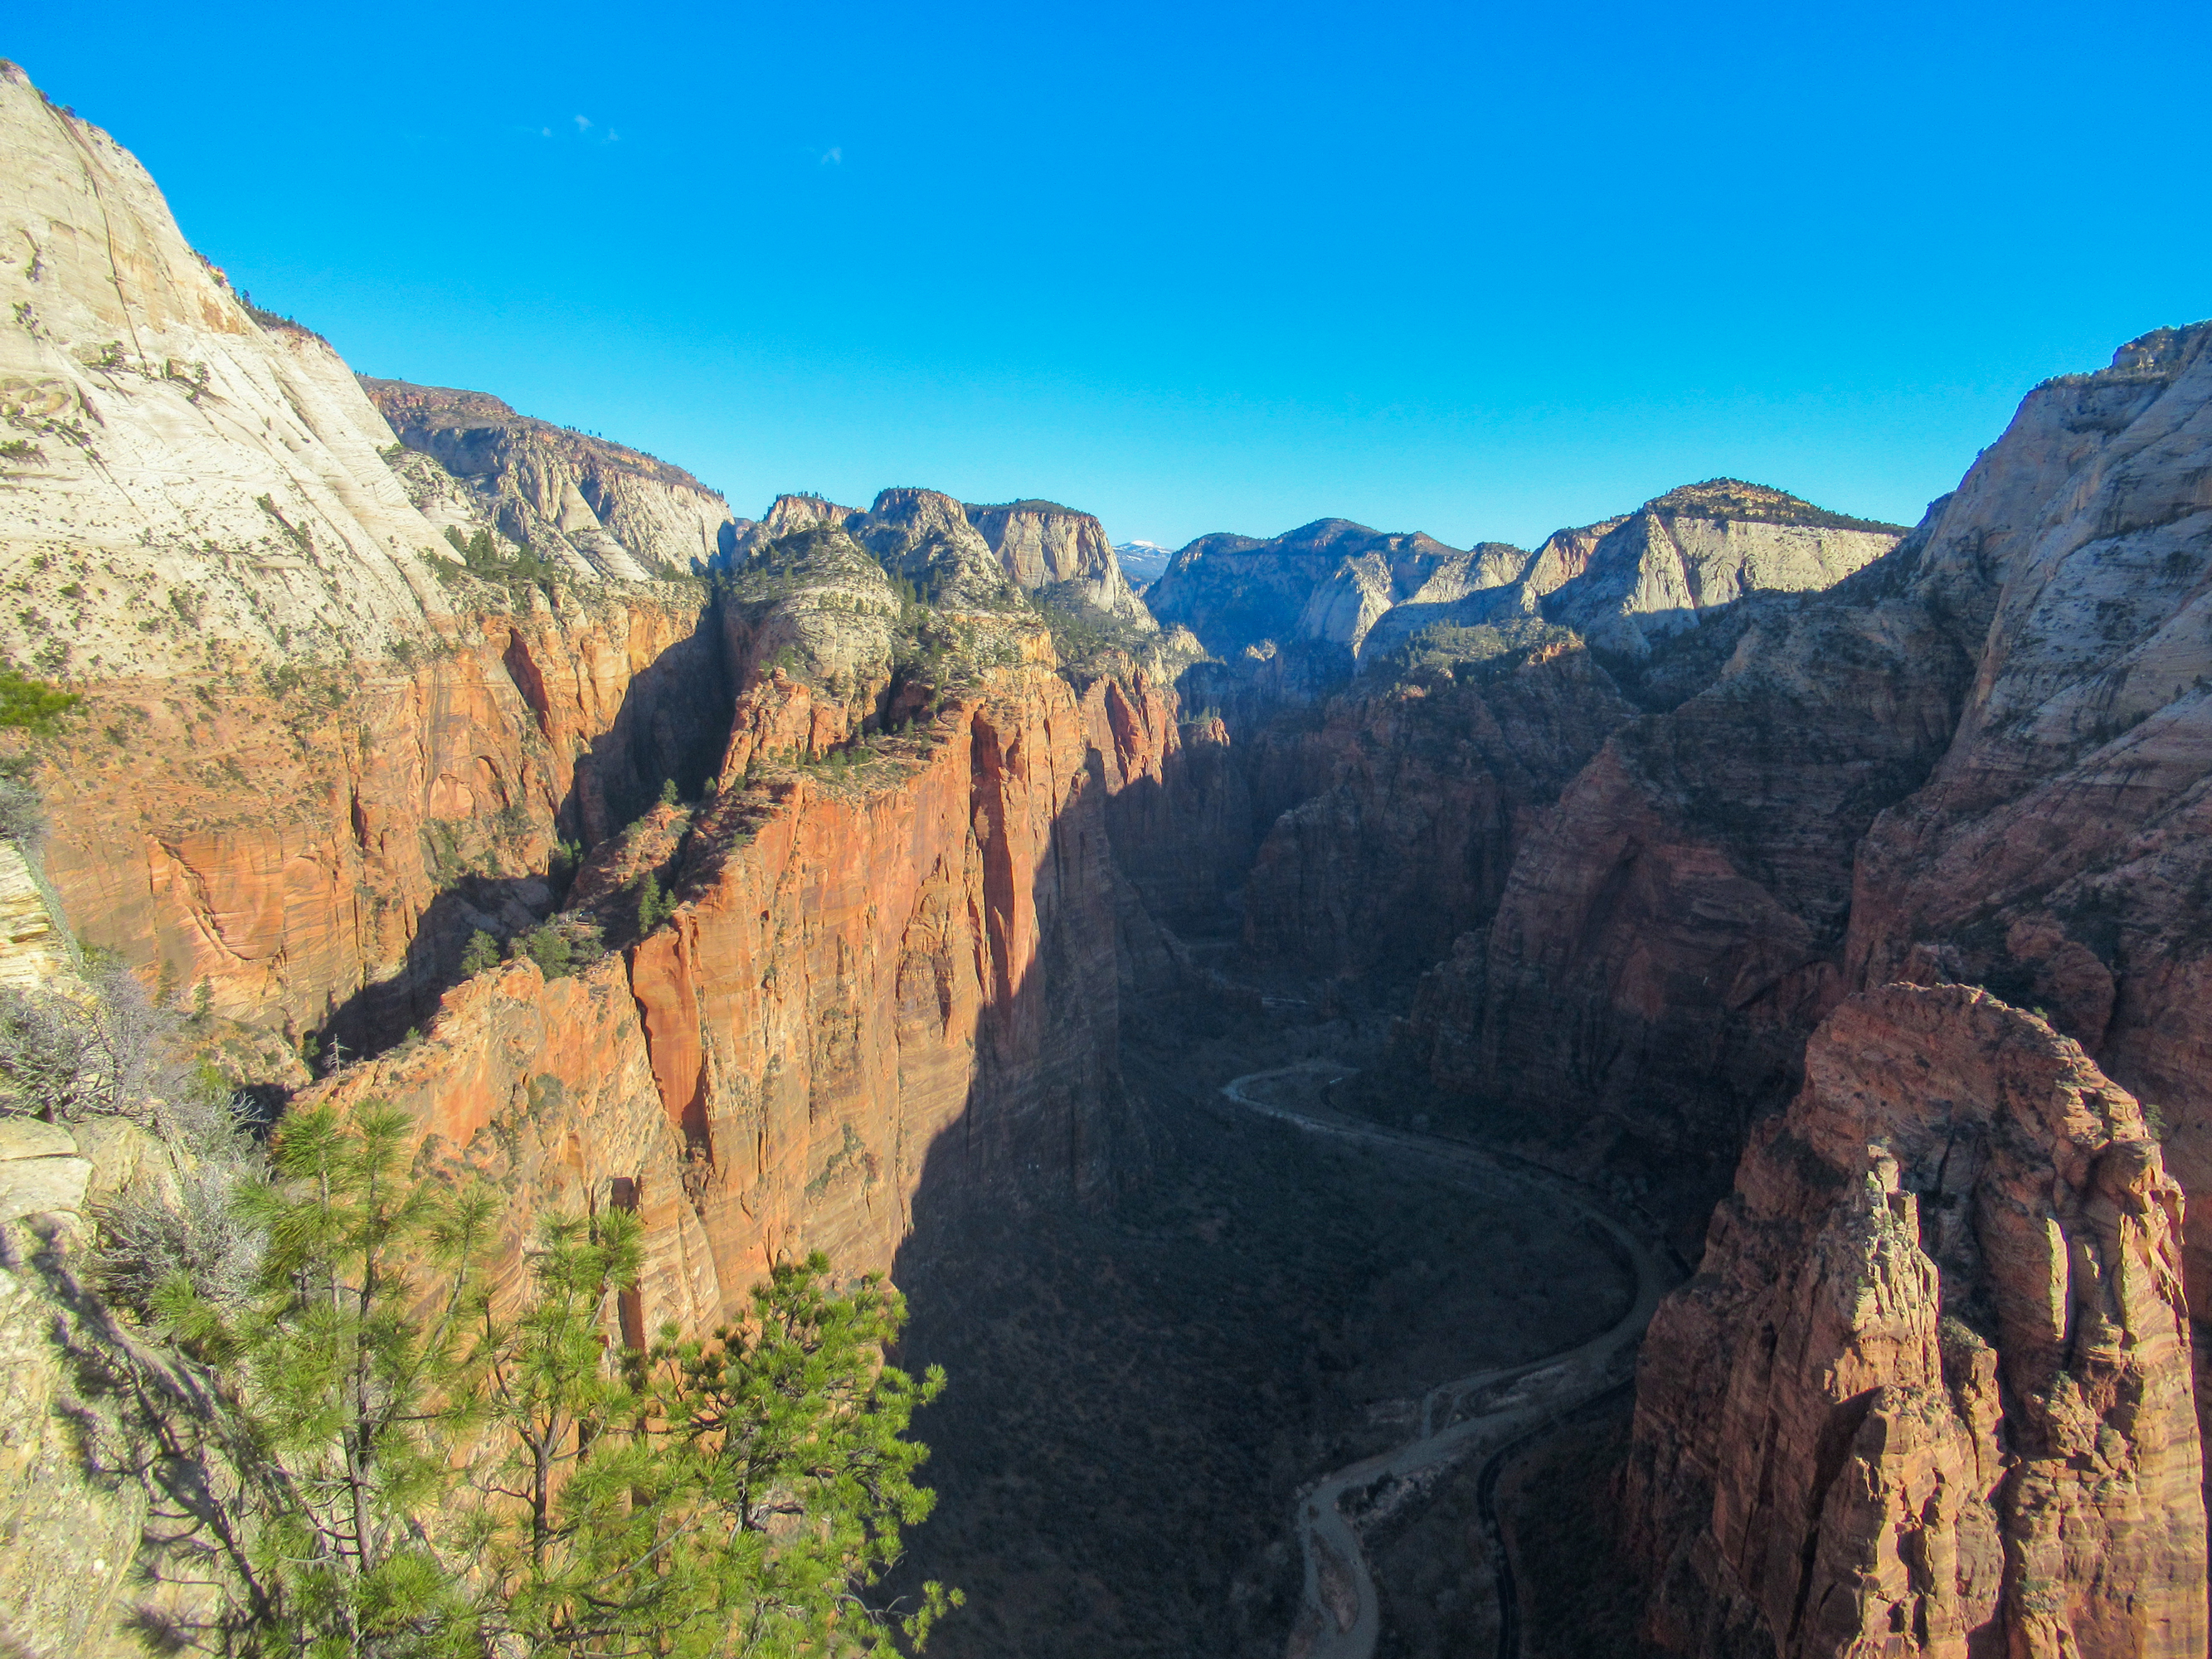 Zion Valley as seen from Angels Landing.